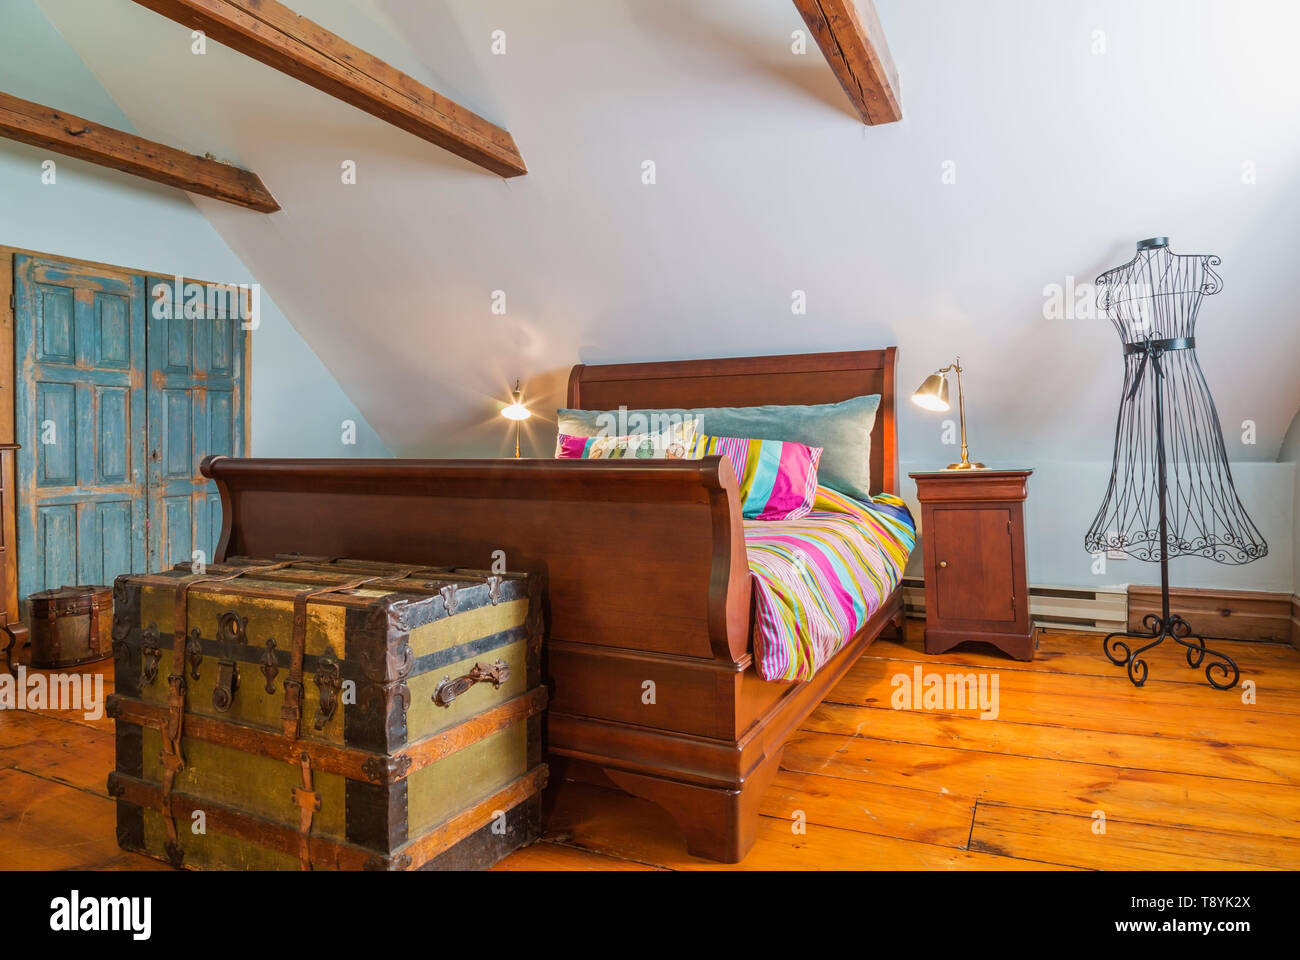 Sleigh Bed High Resolution Stock Photography And Images Alamy